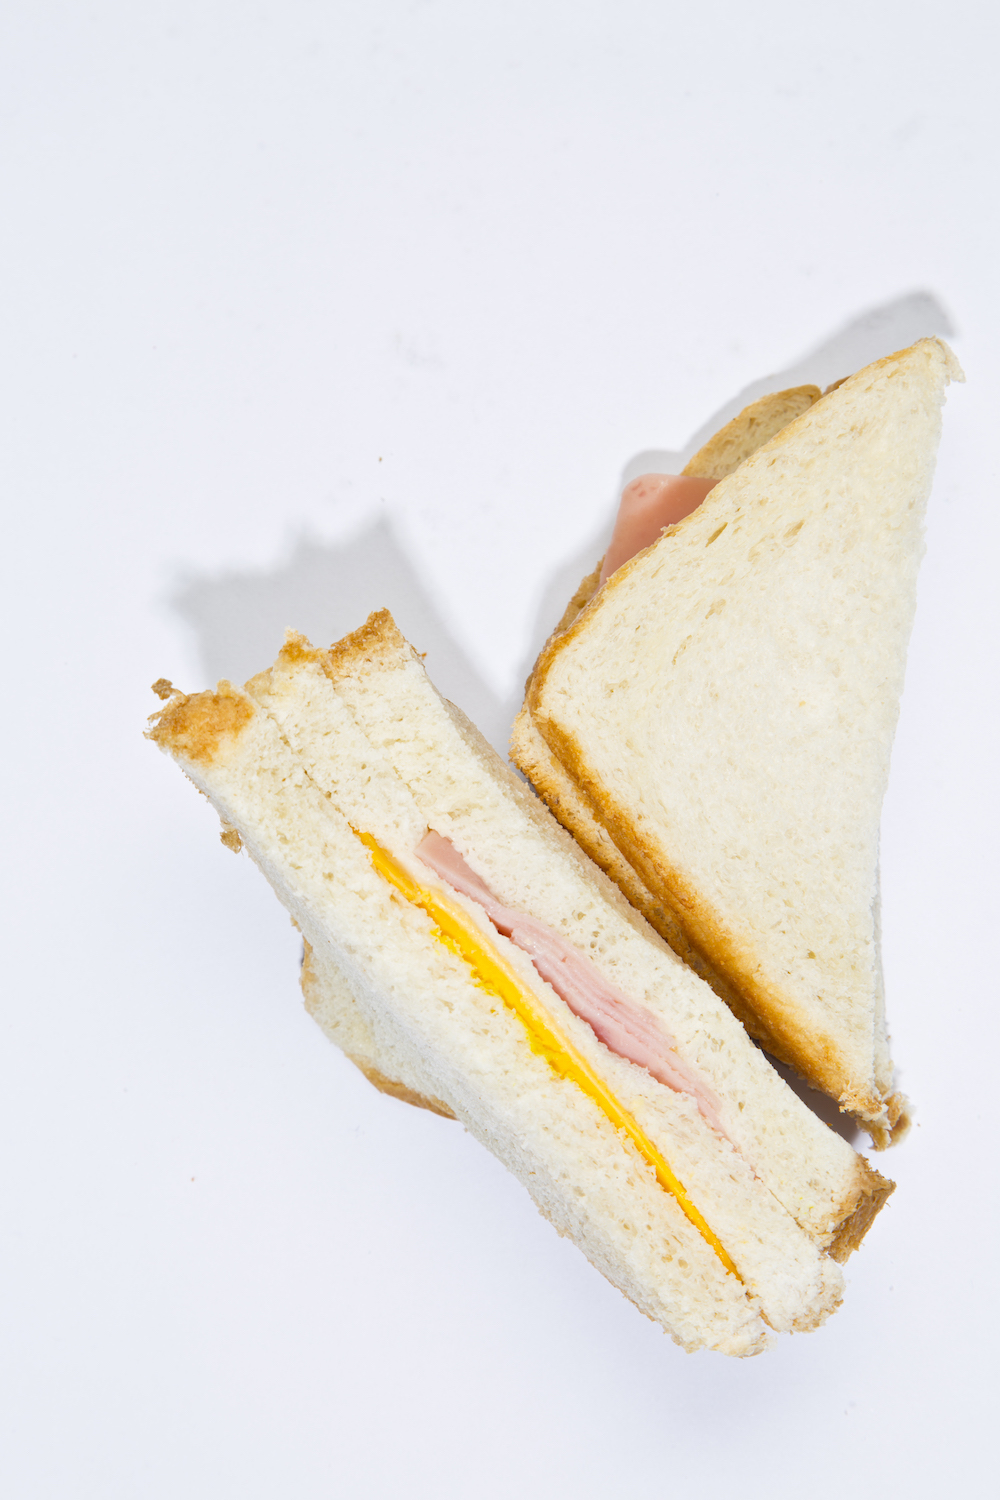 Sandwich+Jamon+queso+A.jpg